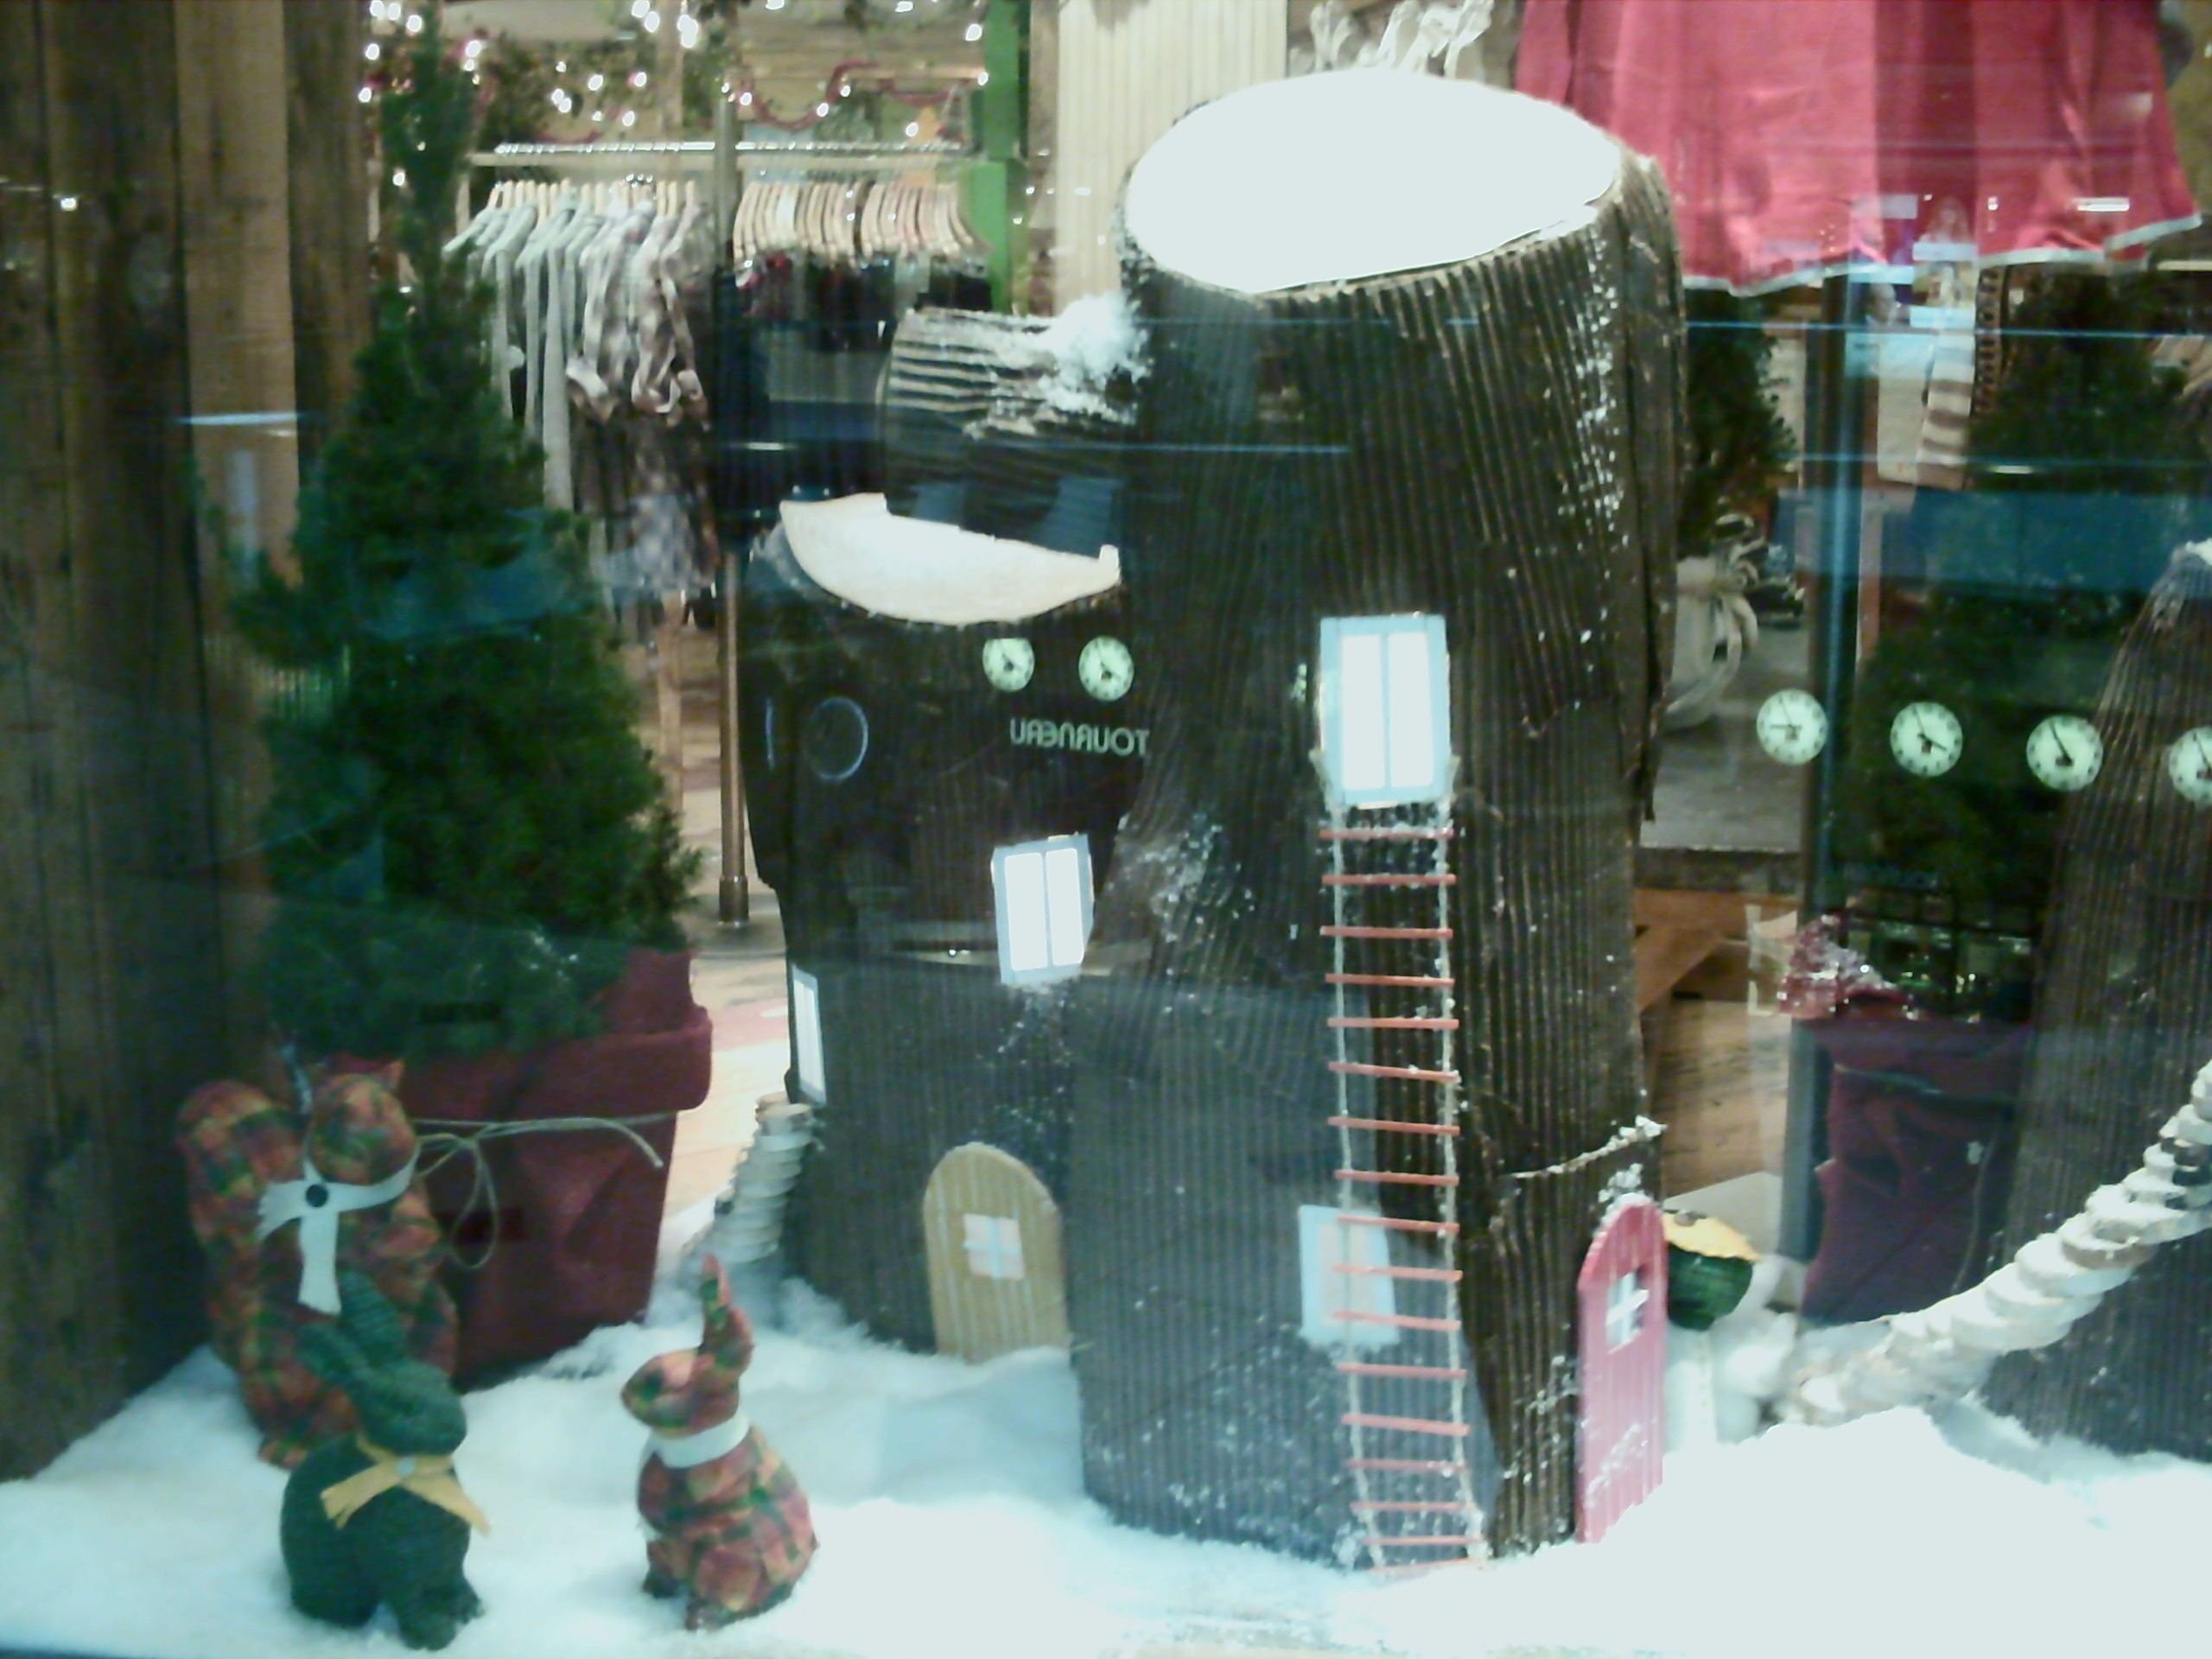 Something that looks like a place for living, specially created for those little bunnies, a fir in a flowerpot and a winter design in this window display.